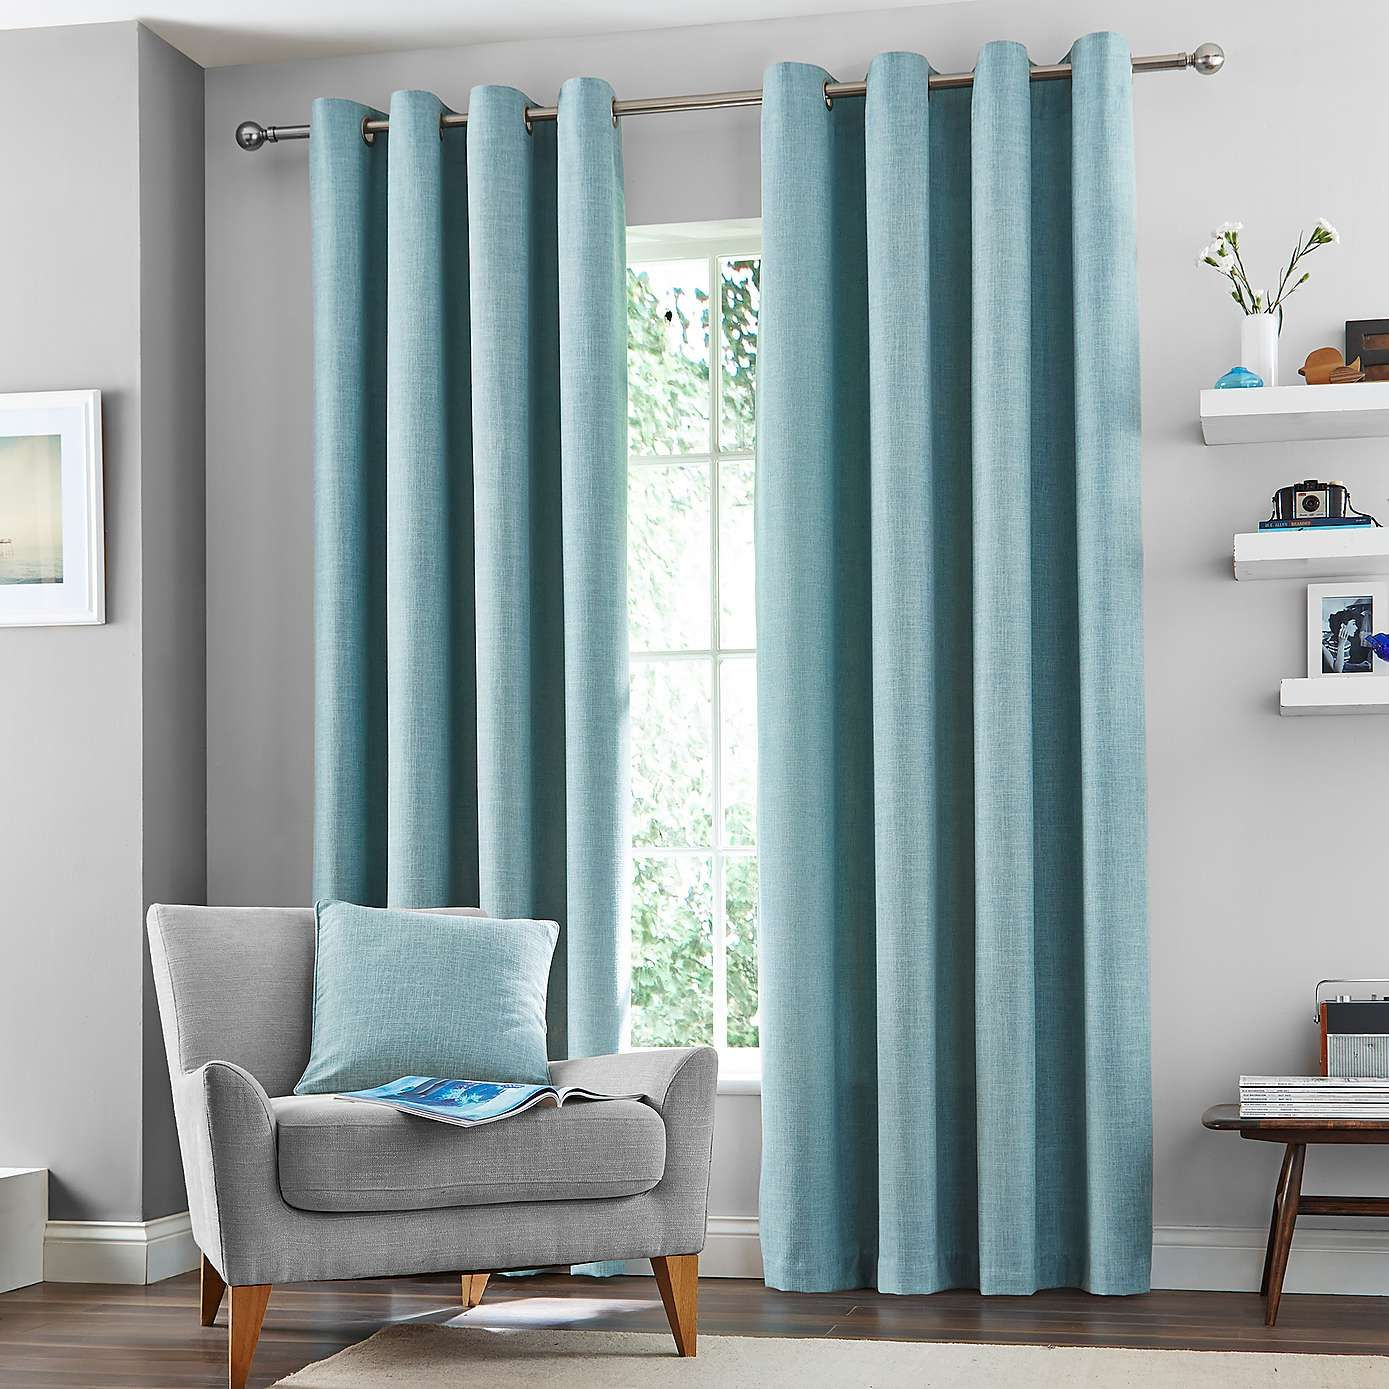 Dunelm Duck Egg Blue Eyelet Curtains | Functionalities.net